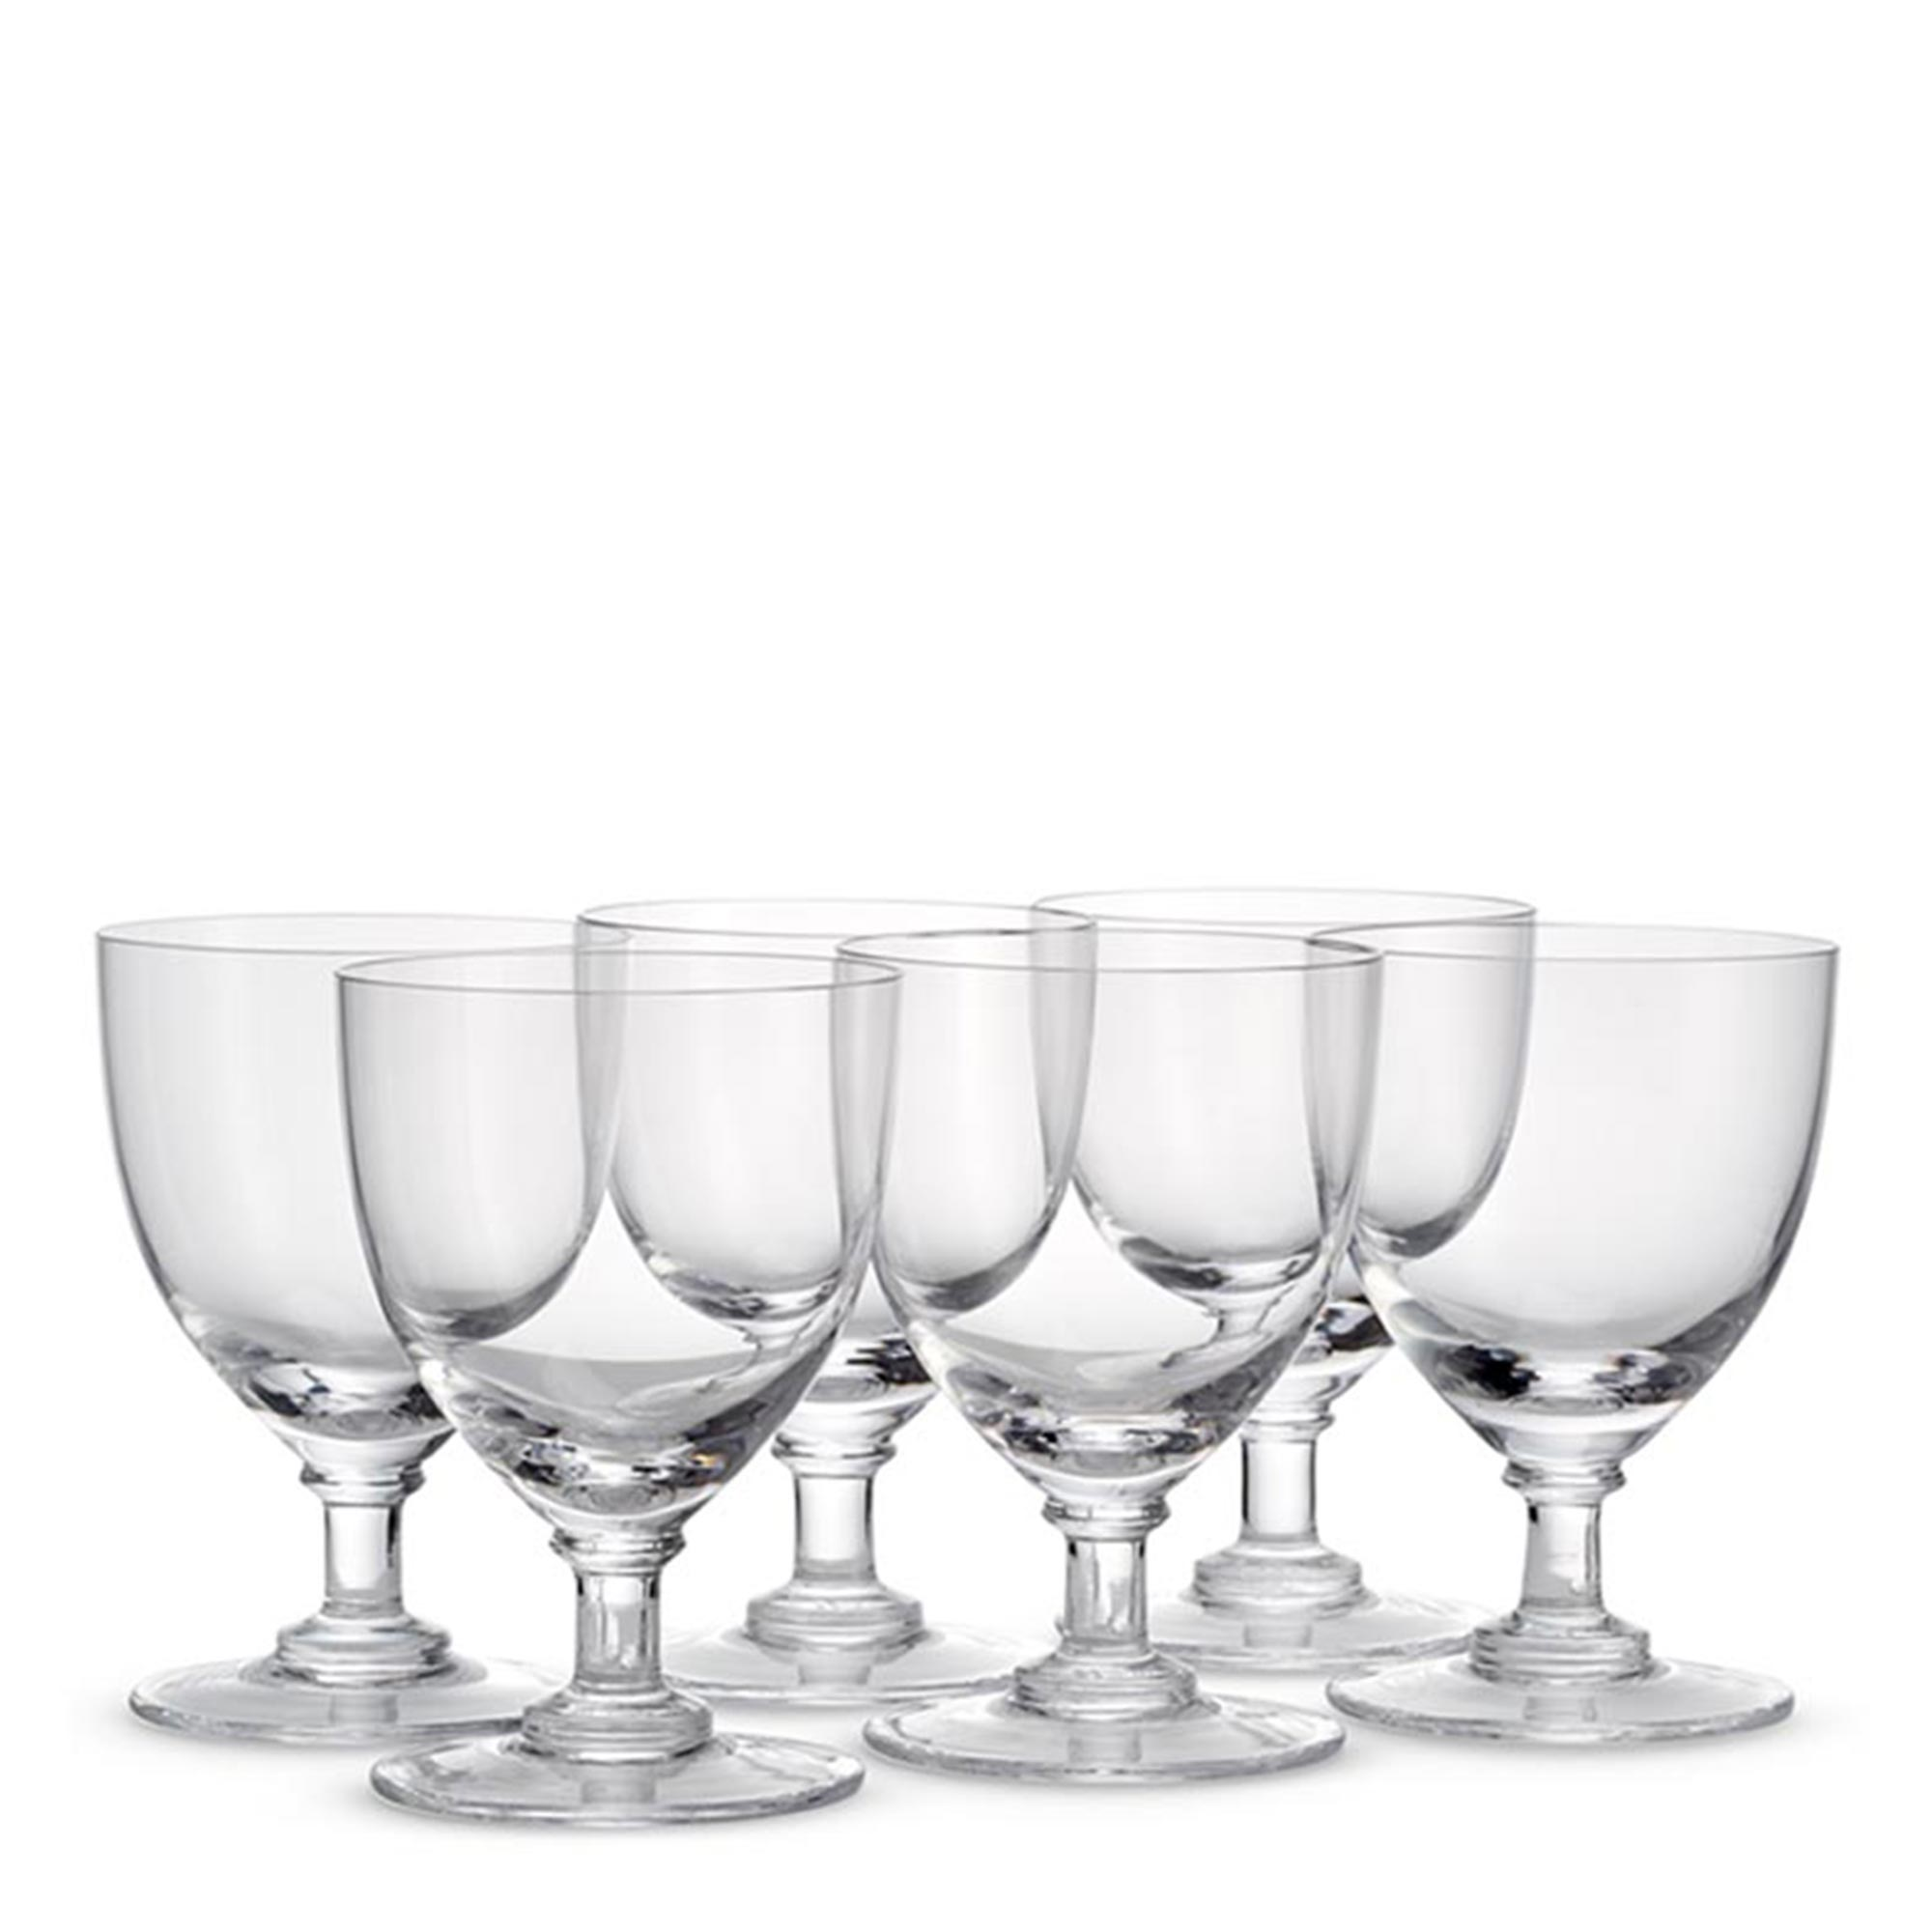 Set of six crystal wine glasses - Glassware - The Wolseley